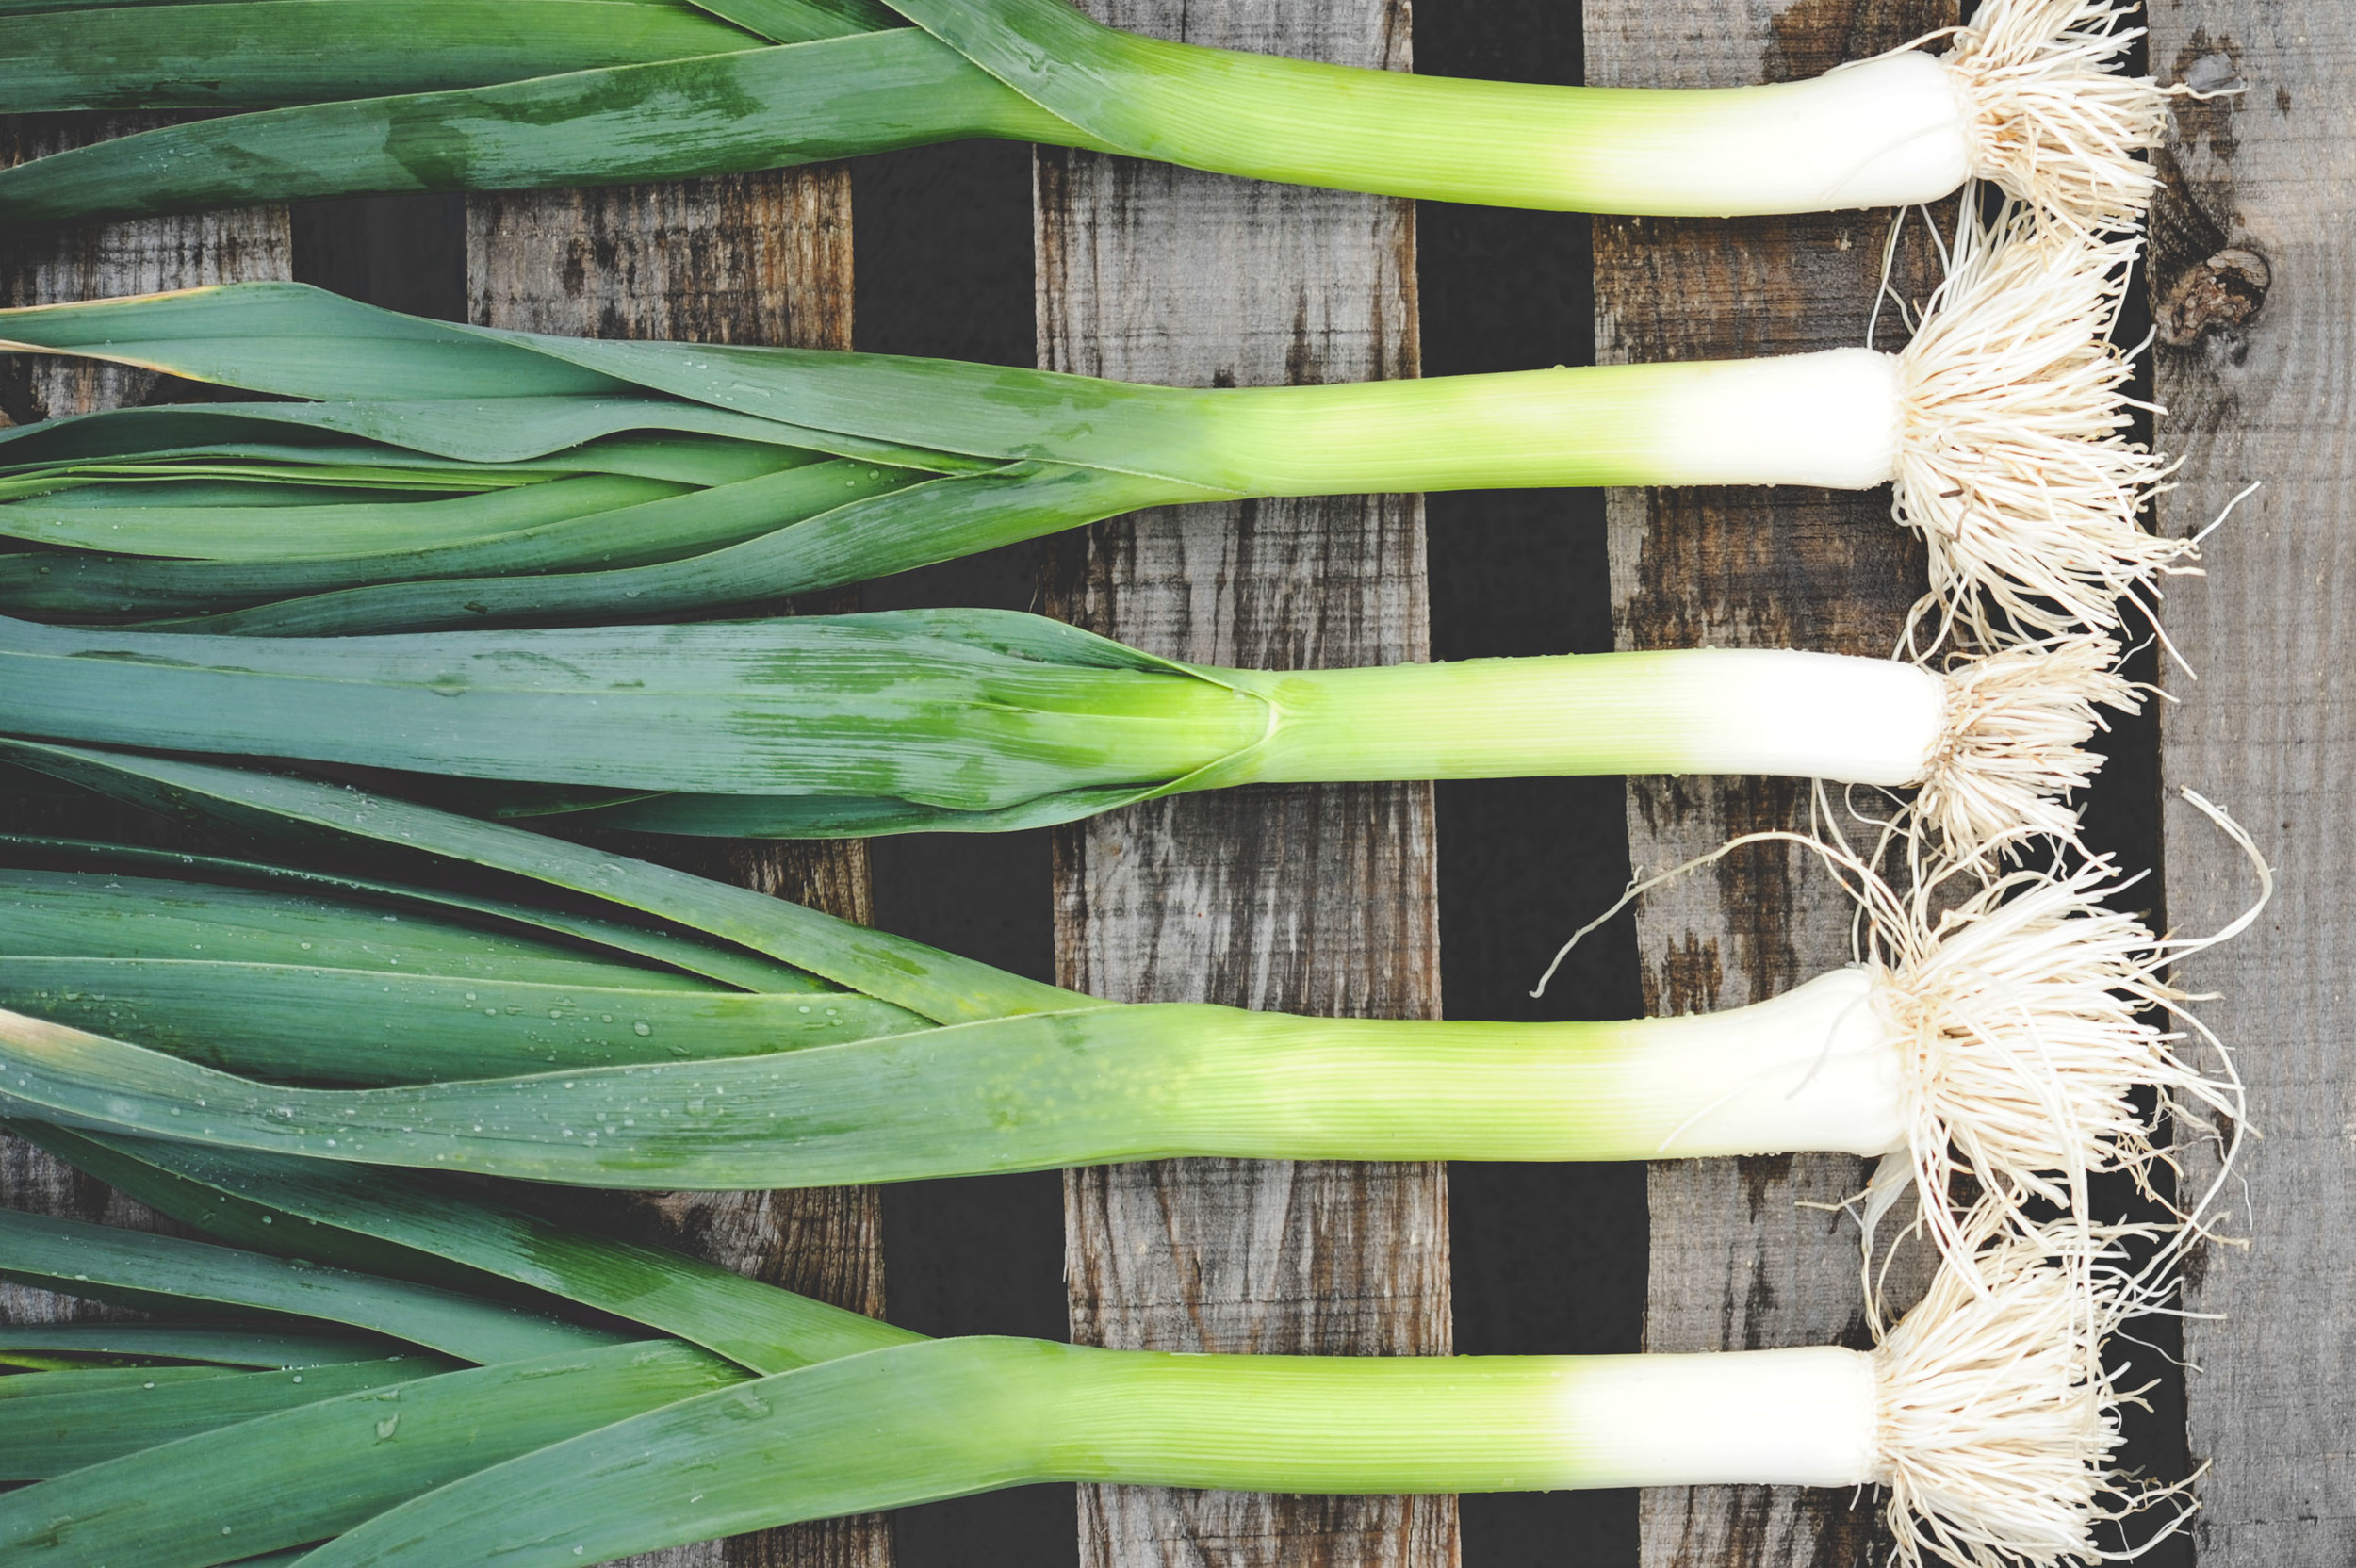 Leeks_Seattle Urban Farm Co.